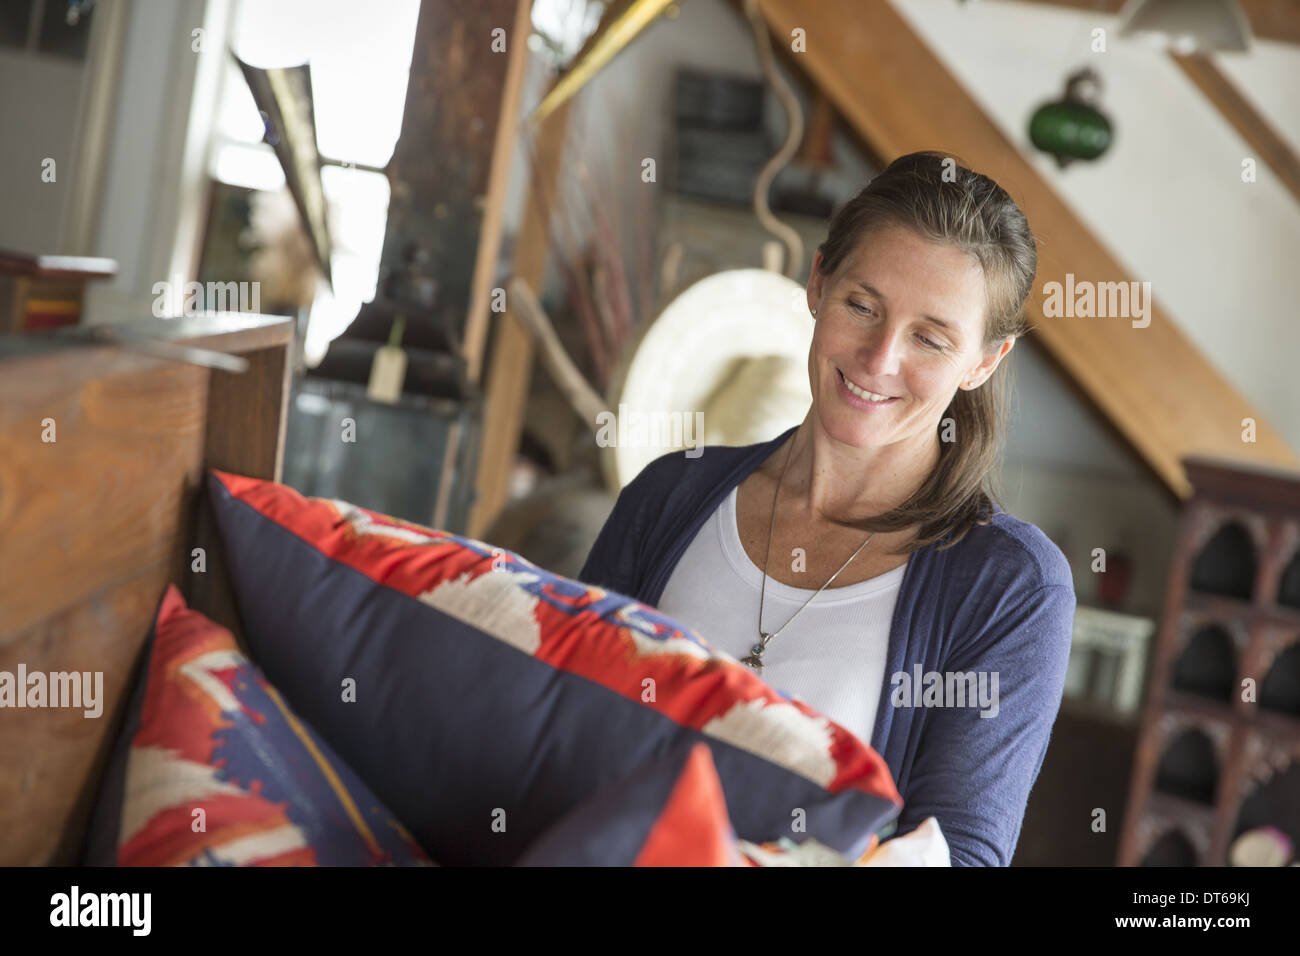 A woman in an antique store in a small town, with objects and furniture from the past. - Stock Image